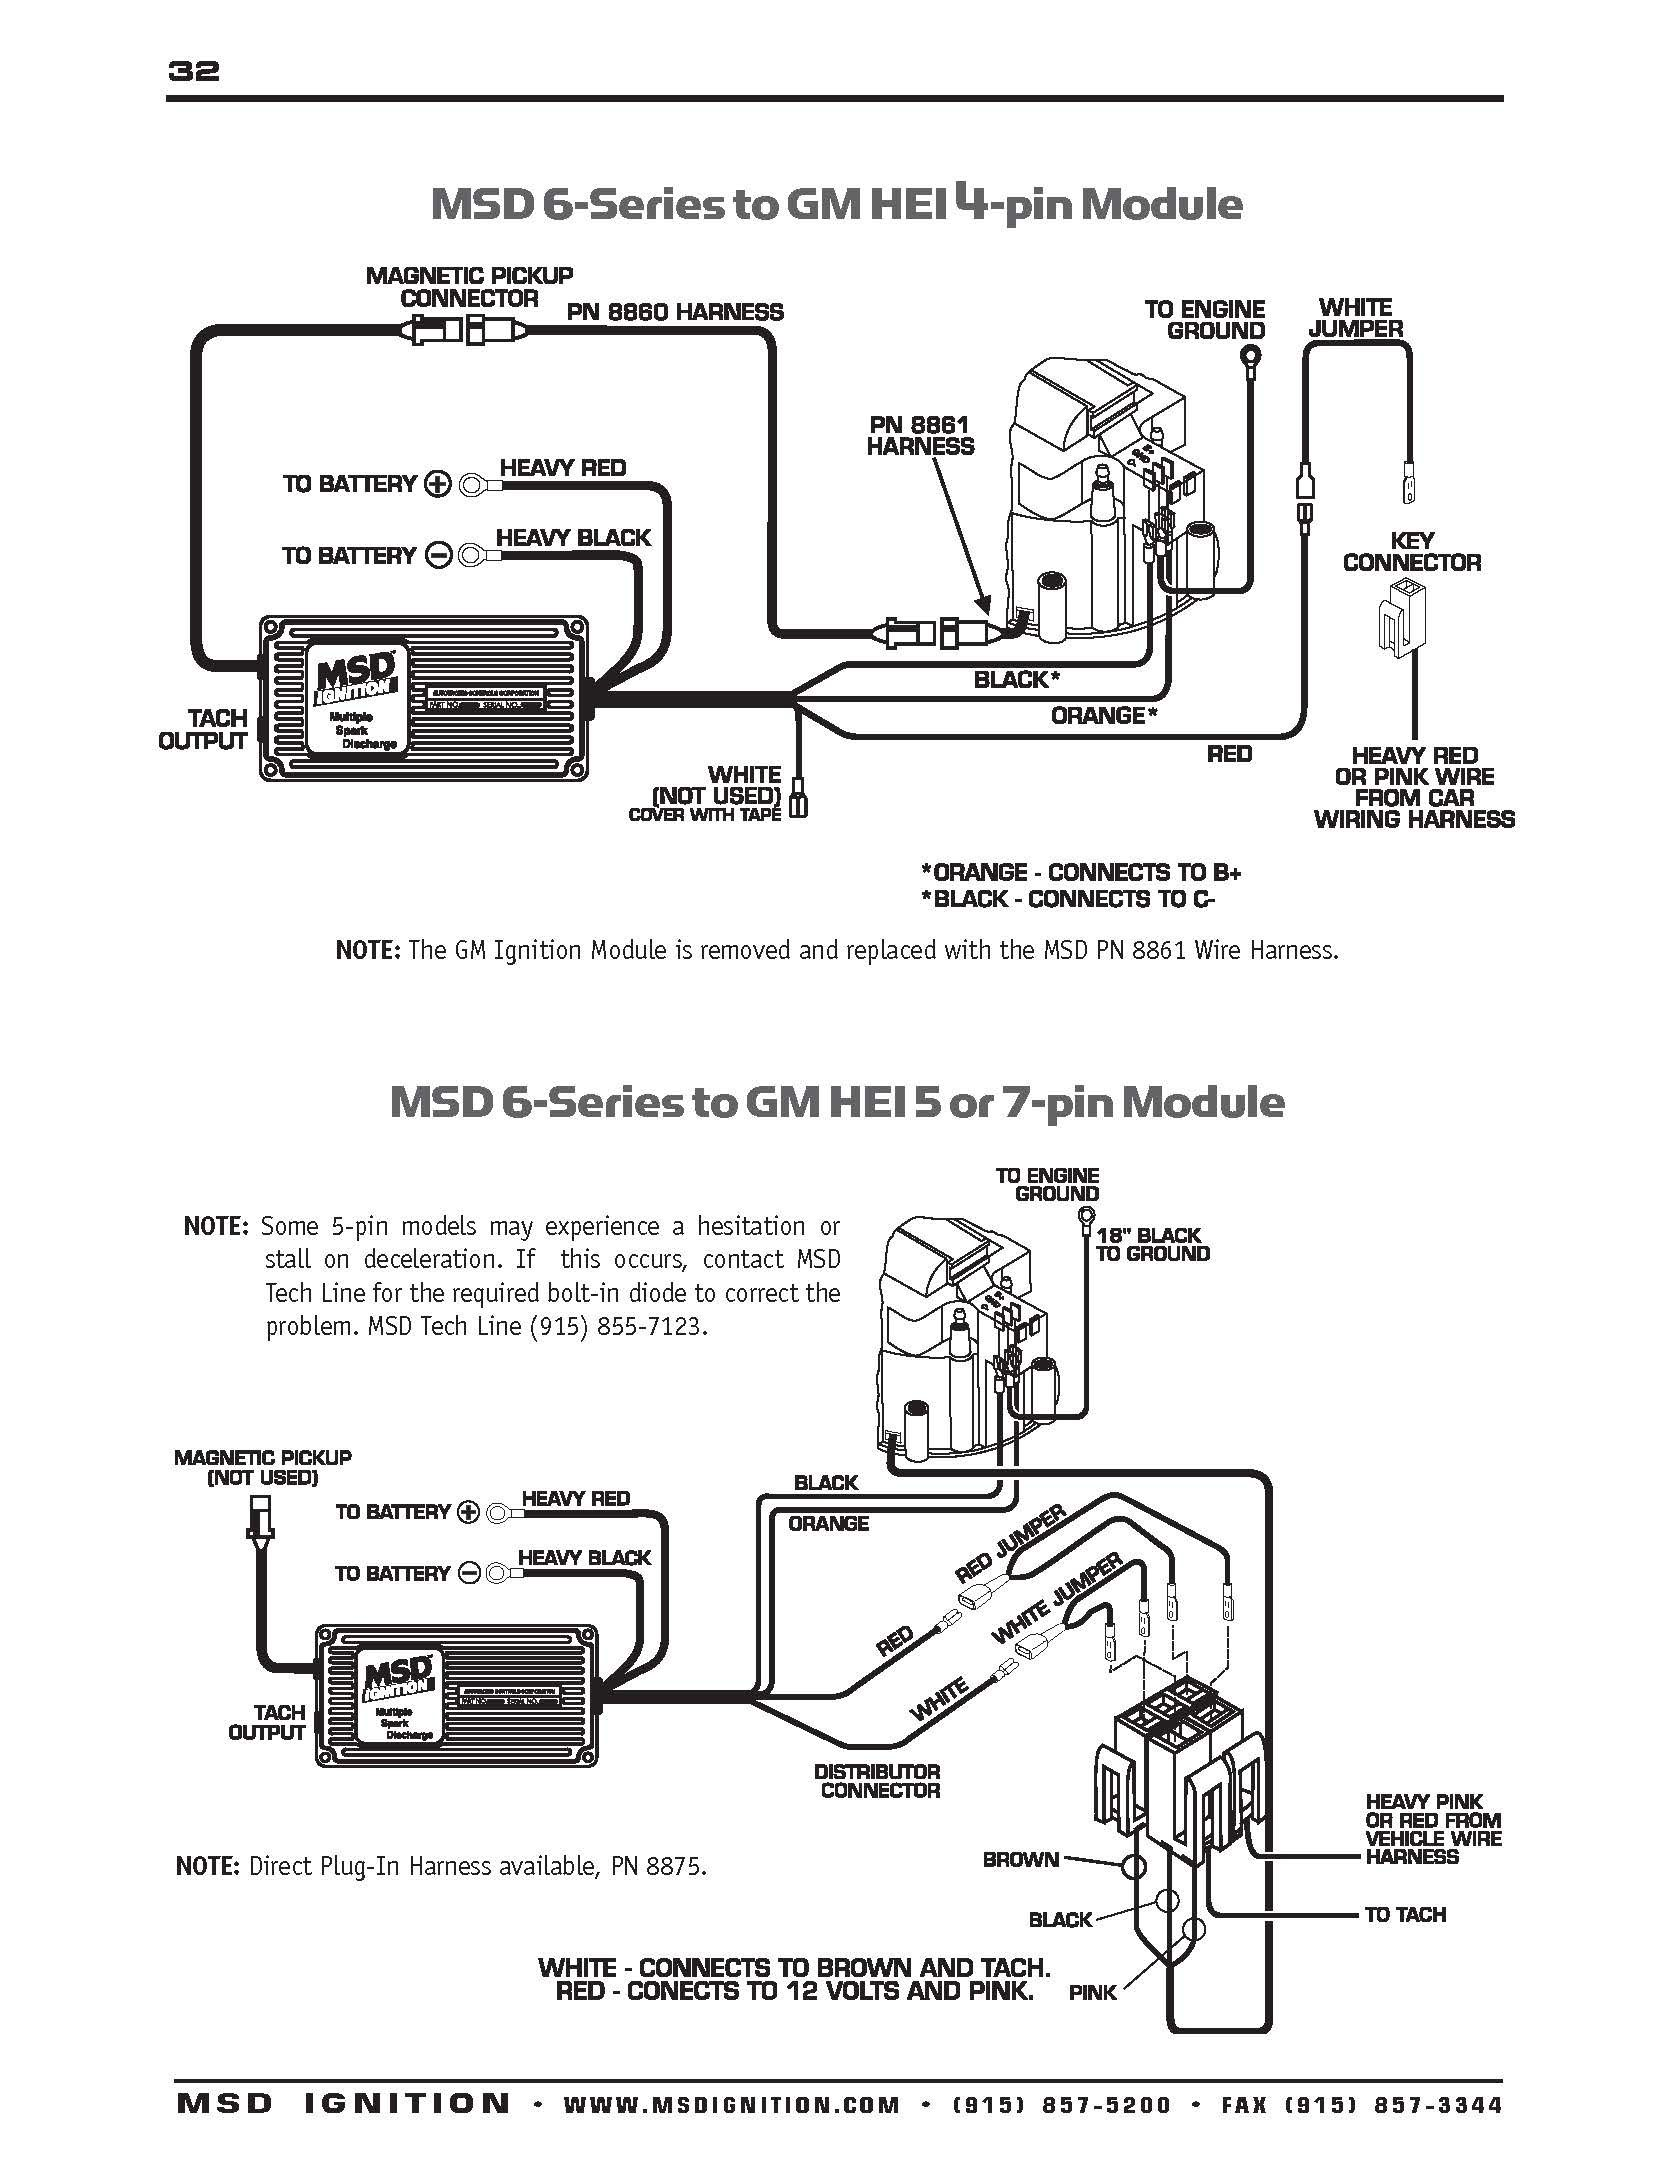 a8a9c5dd0854d22e6aad6bb5dda79a11 msd ignition wiring diagrams 1966 chevelle pinterest engine ls coil pack wiring diagram at soozxer.org